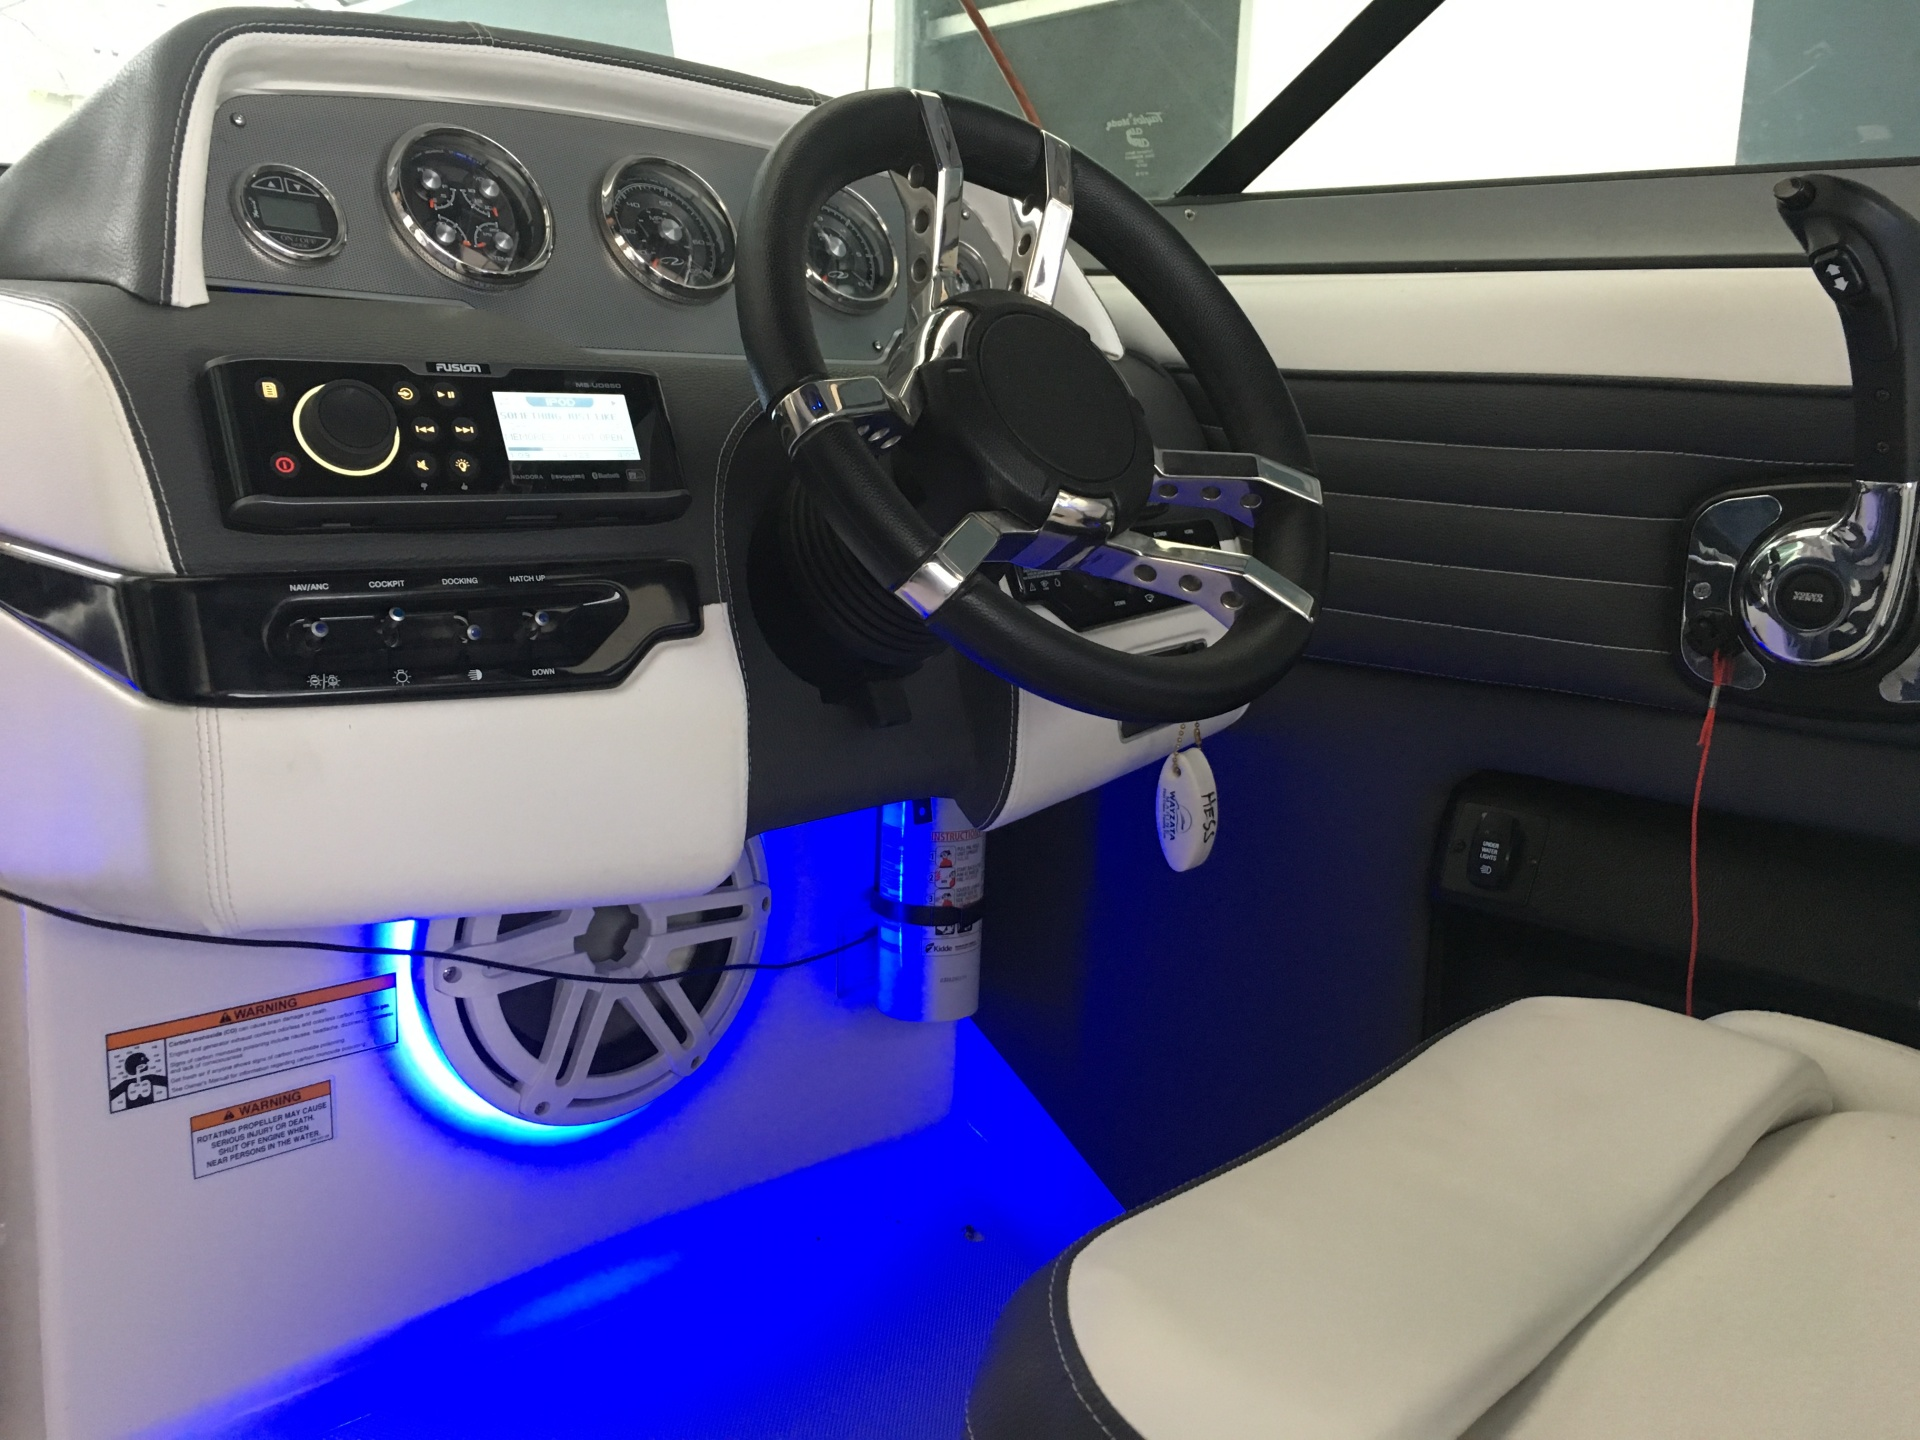 2016 Regal 2500 w/ full JL Audio system and LED speaker rings